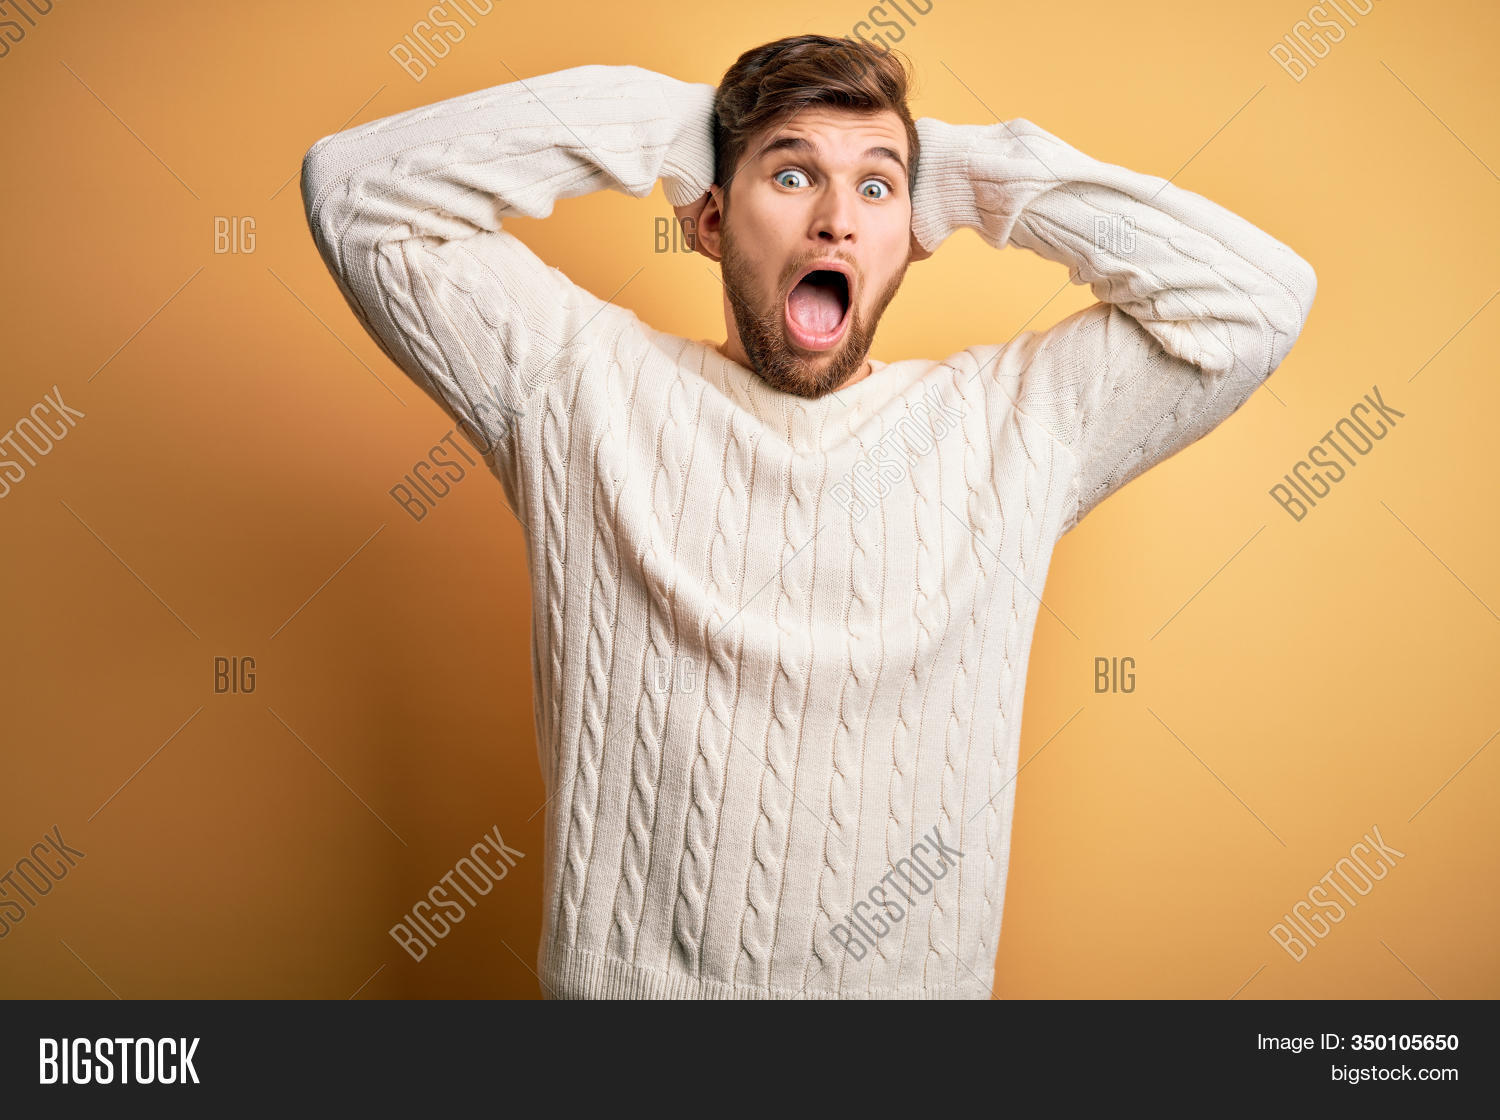 Young blond man with beard and blue eyes wearing white sweater over yellow background Crazy and scared with hands on head, afraid and surprised of shock with open mouth